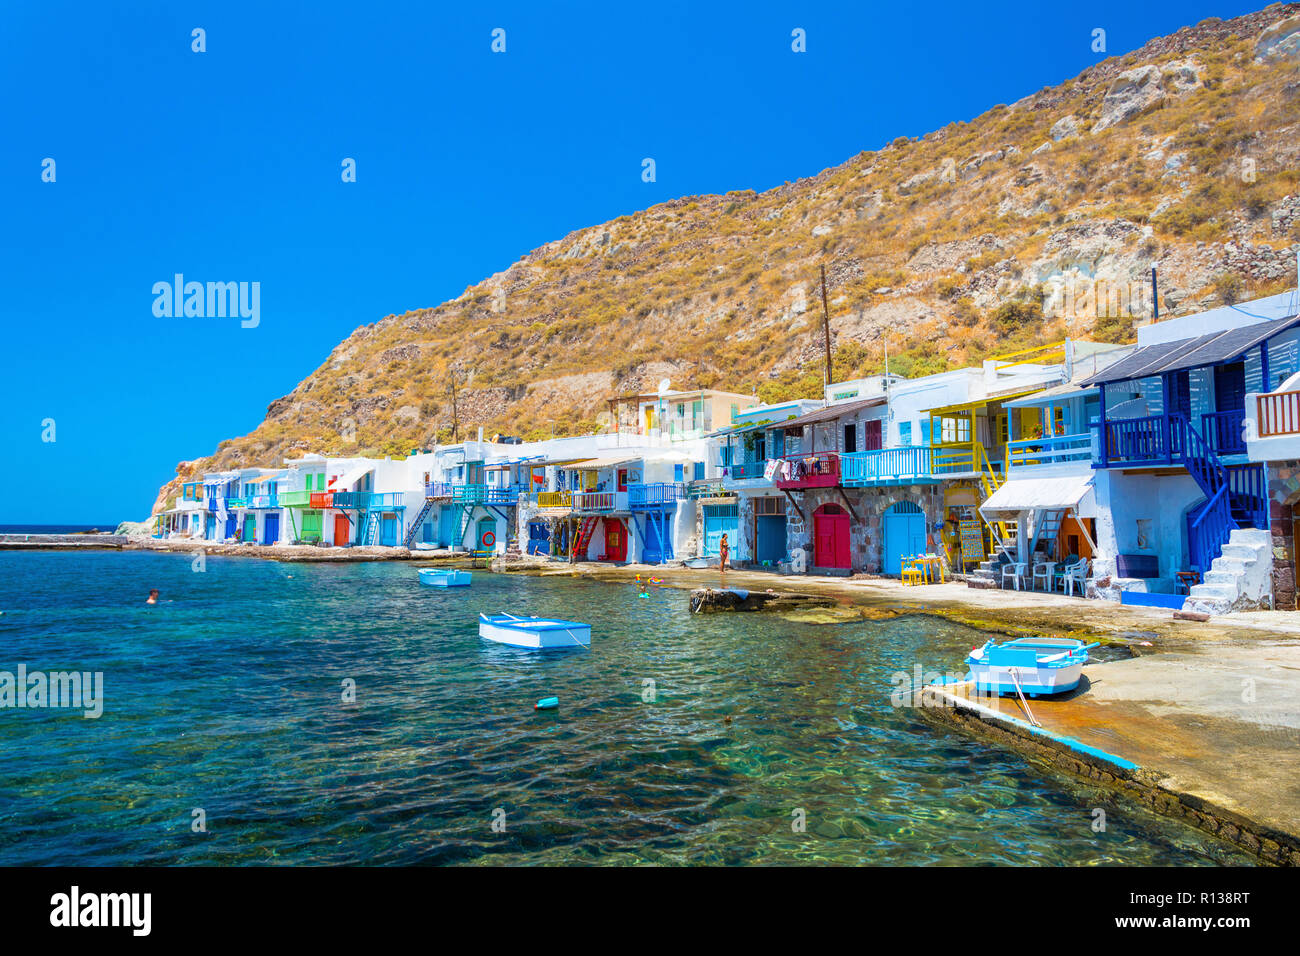 Scenic Klima village (traditional Greek village by the sea, the Cycladic-style) with sirmata - traditional fishermen's houses, Milos island, Cyclades, - Stock Image